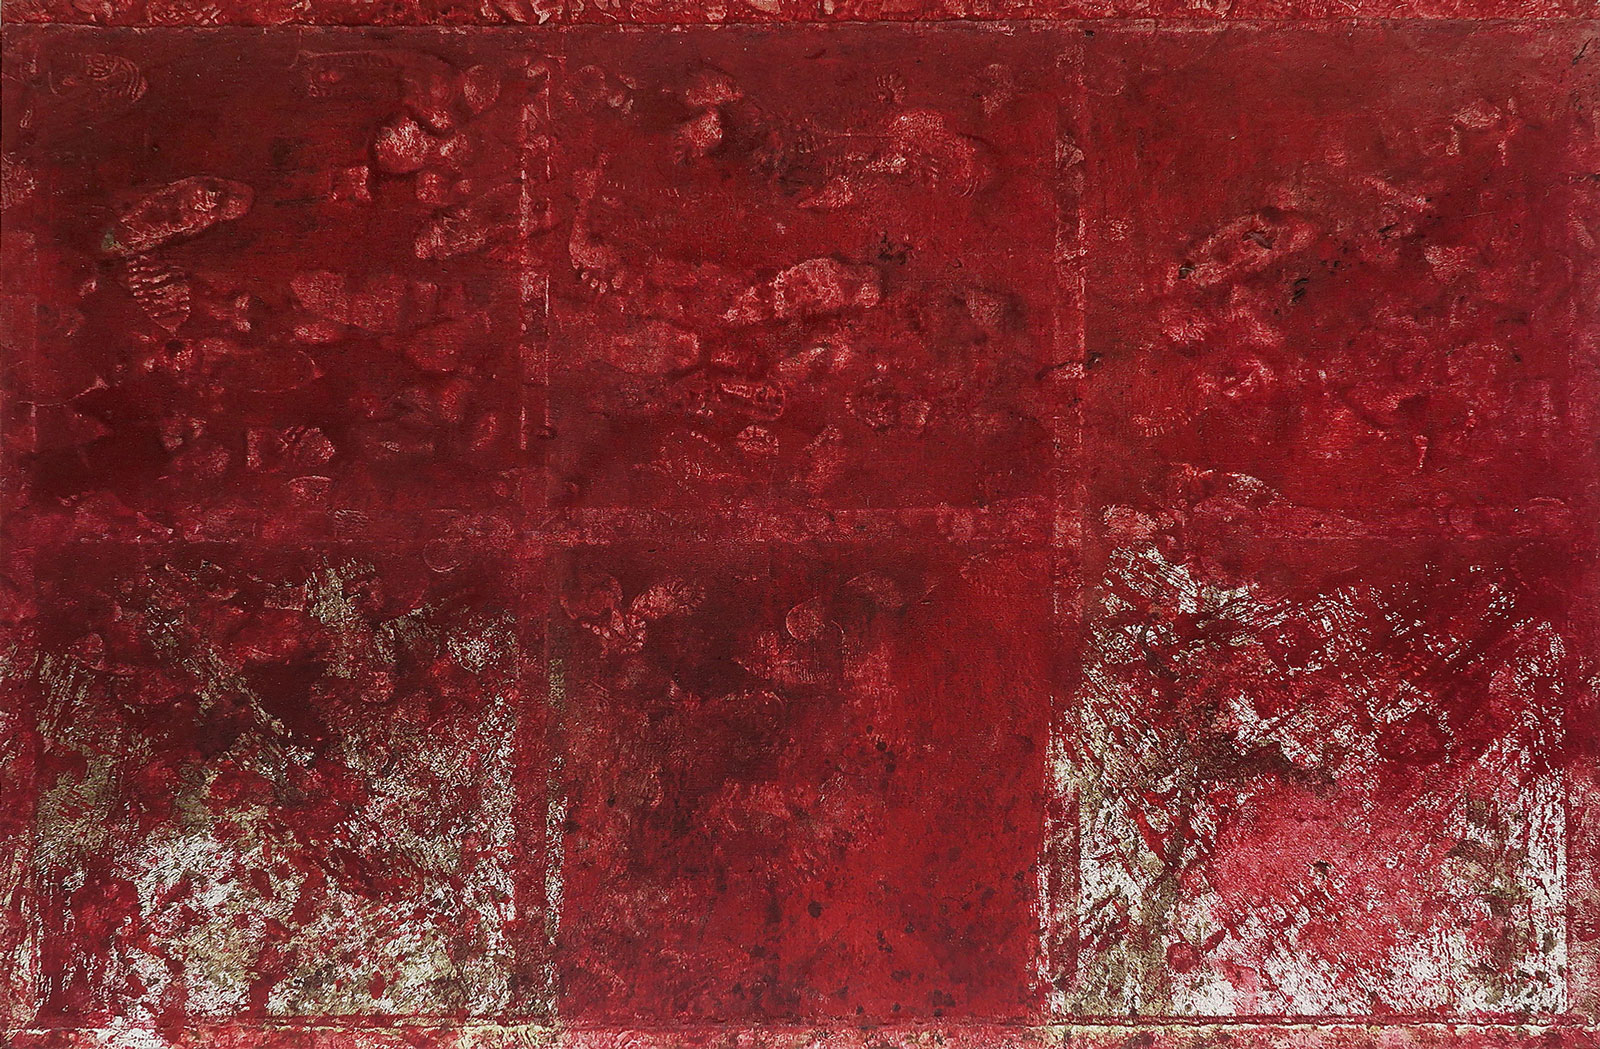 Hermann Nitsch 1998 Blood and Acrylic on Canvas 78 3/4 x 118 1/4 in 200 x 300 cm 2015 Marc Straus Gallery